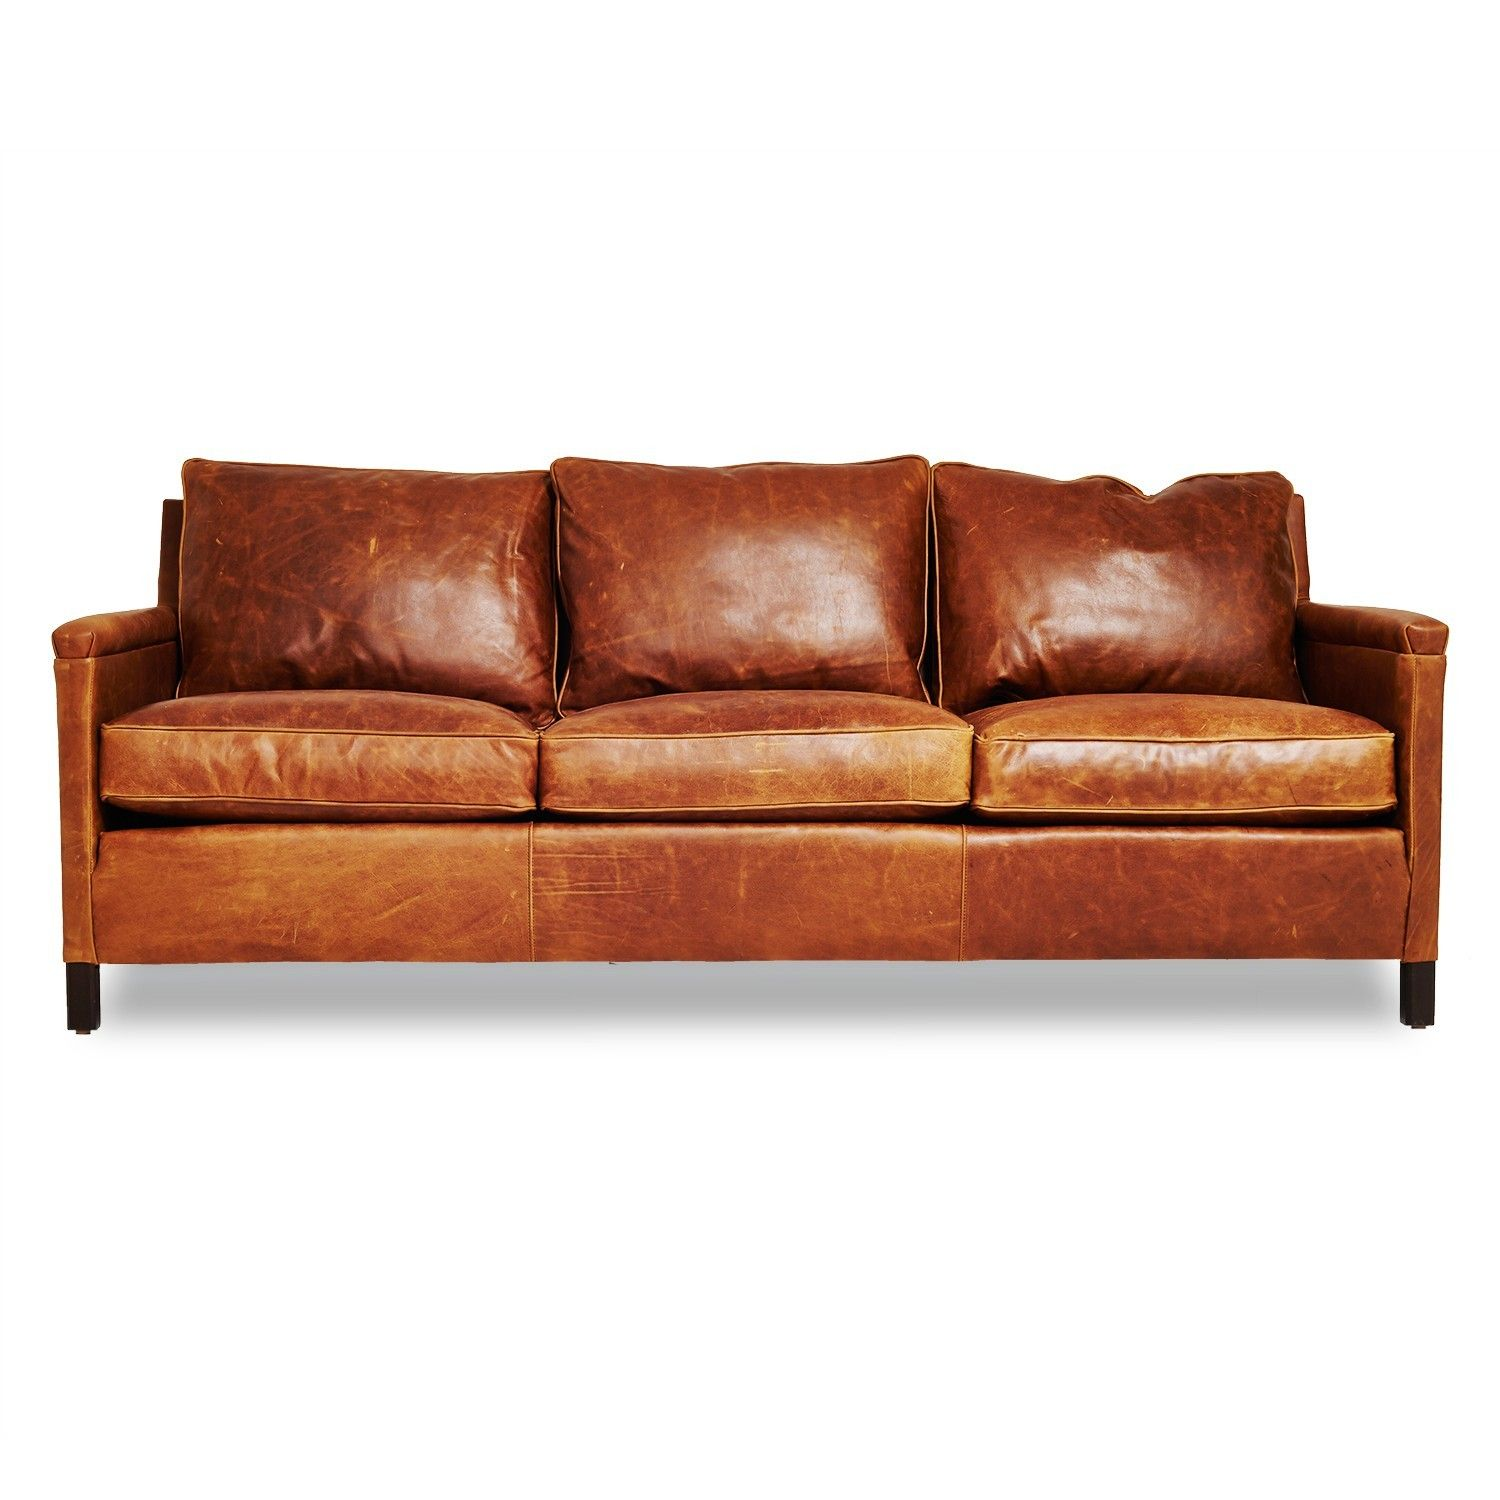 where to buy sofa in jb camden grey linen burnt orange leather used rustic brown